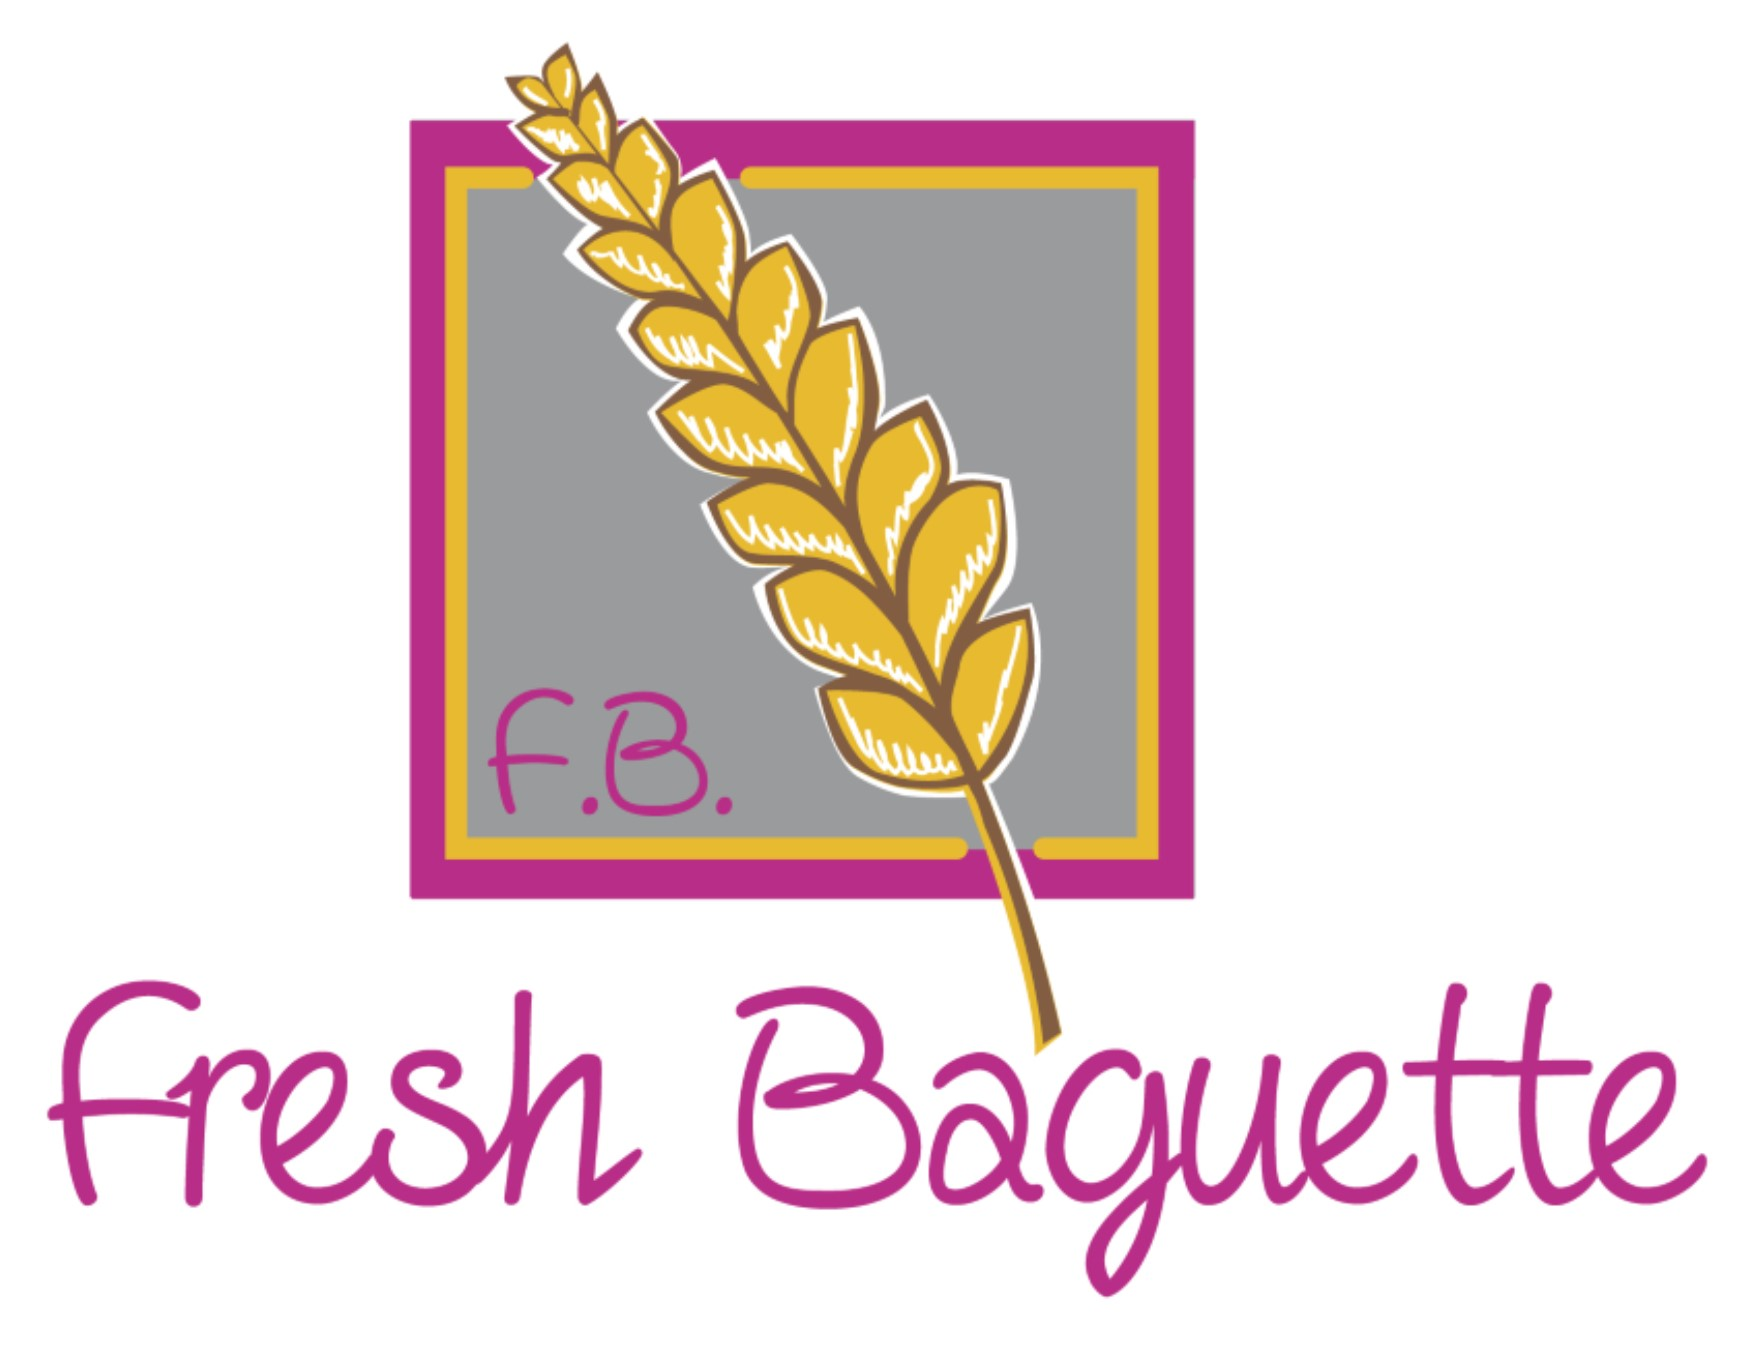 copy of fresh baguette logo